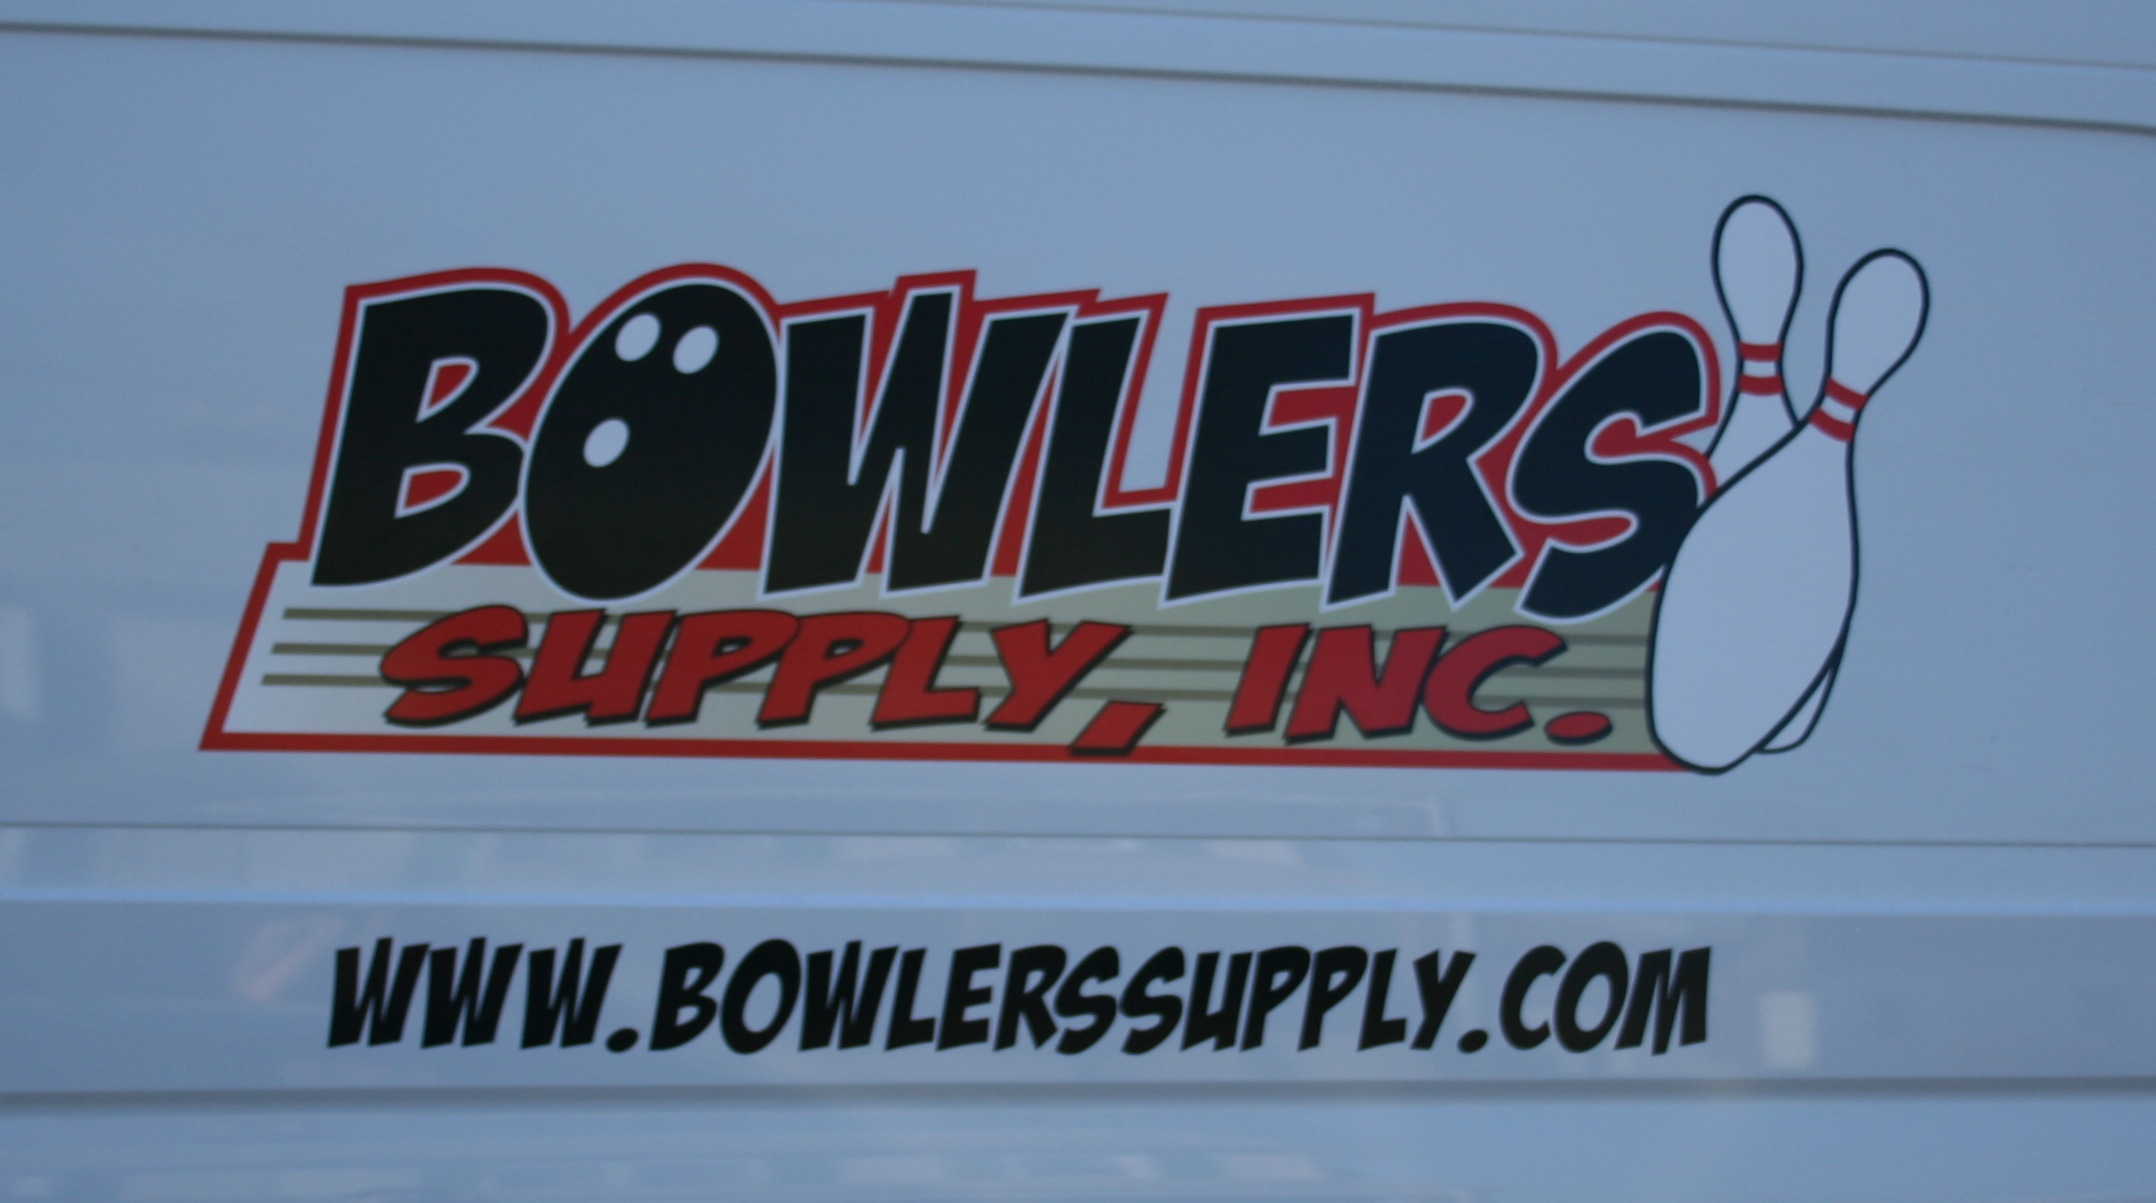 Bowlers Supply Van